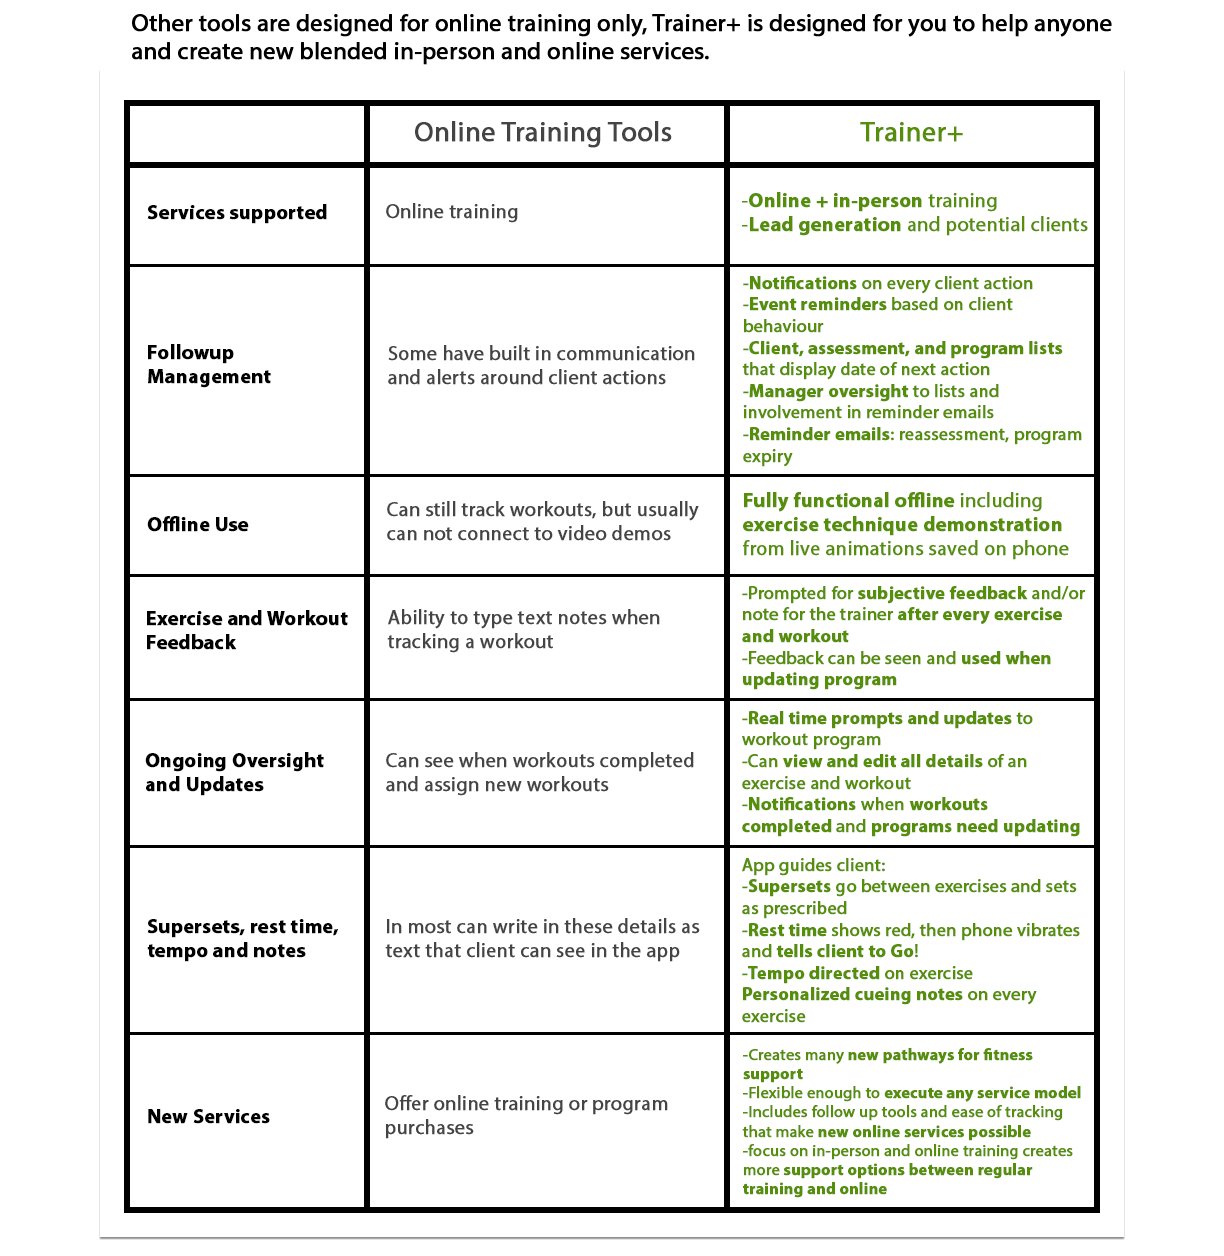 Why comparison charts - Online.png